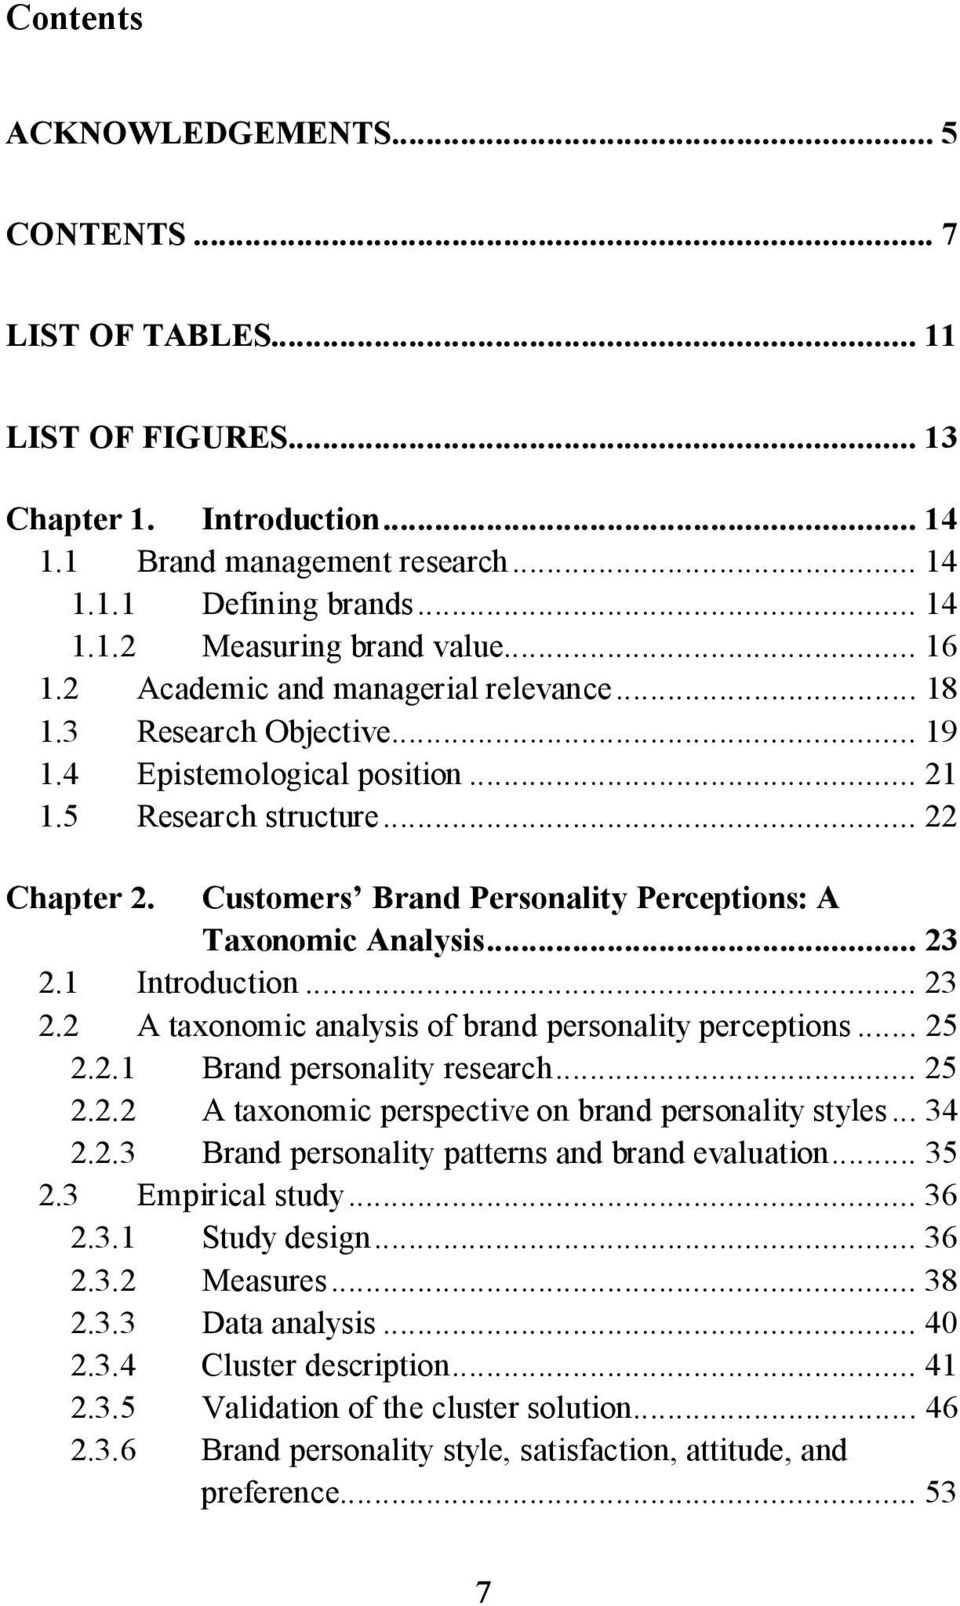 Customers Brand Personality Perceptions: A Taxonomic Analysis... 23 2.1 Introduction... 23 2.2 A taxonomic analysis of brand personality perceptions... 25 2.2.1 Brand personality research... 25 2.2.2 A taxonomic perspective on brand personality styles.